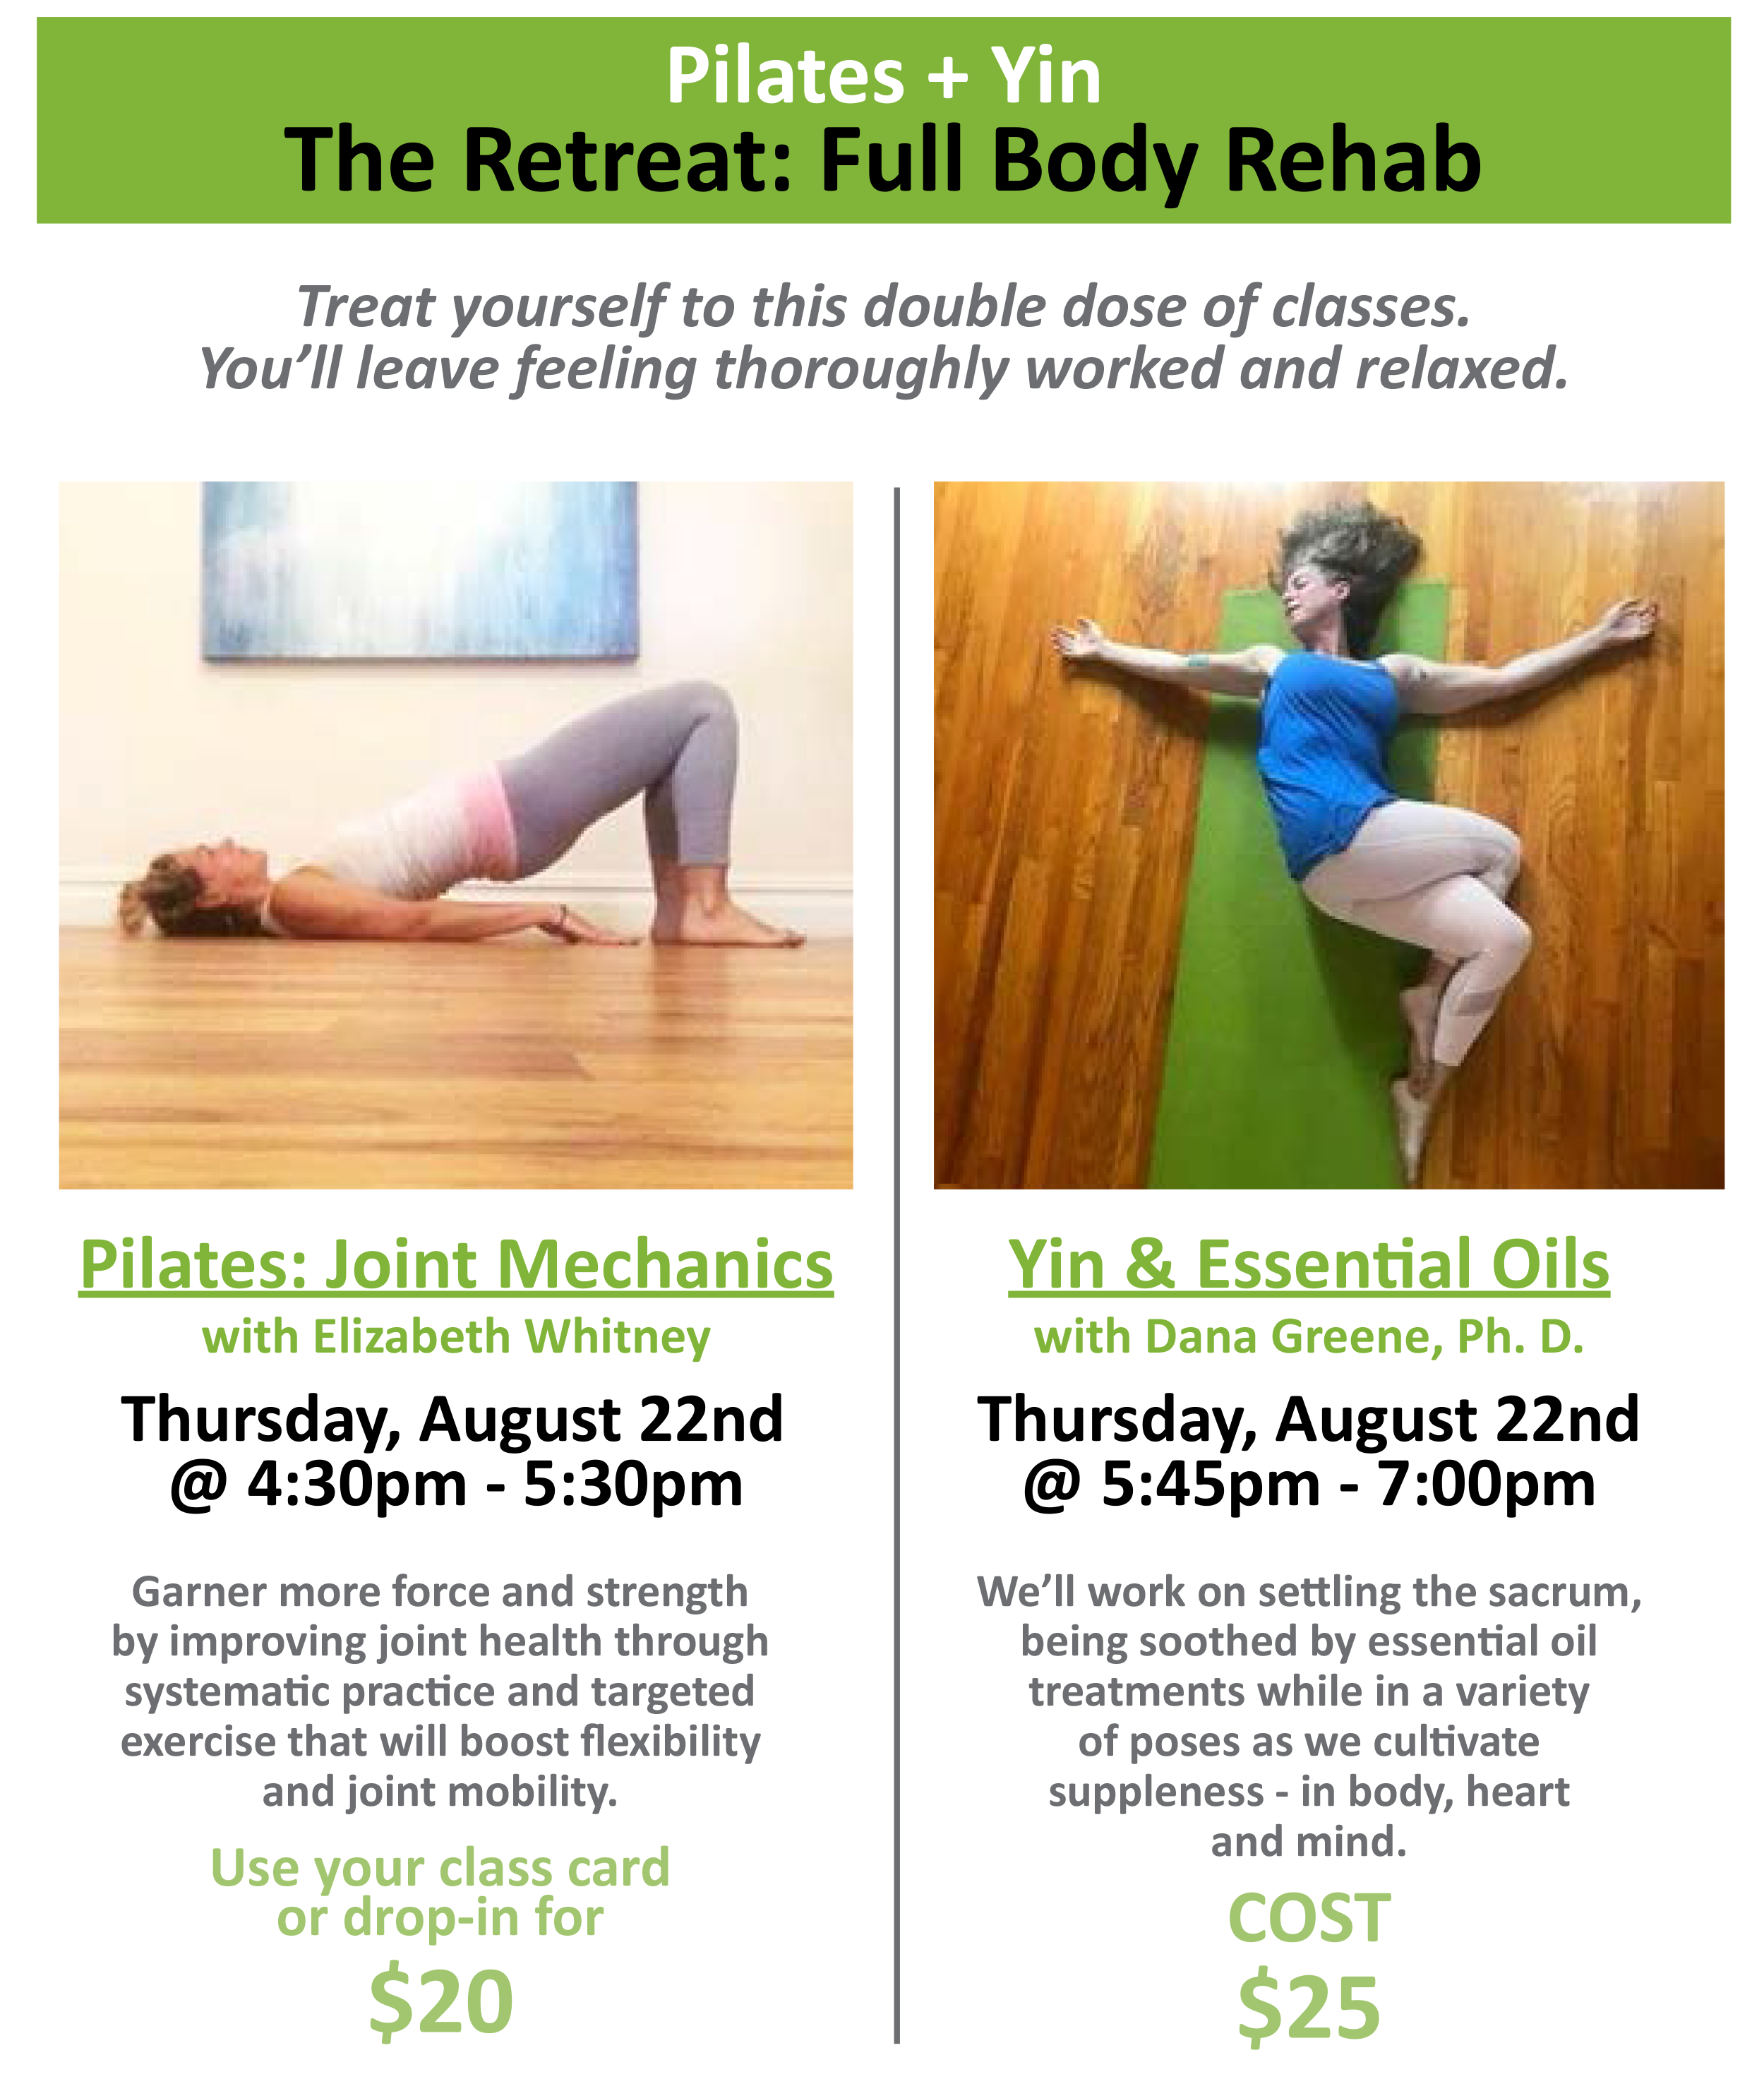 _Pilates + Yin- The Retreat Flyer.png